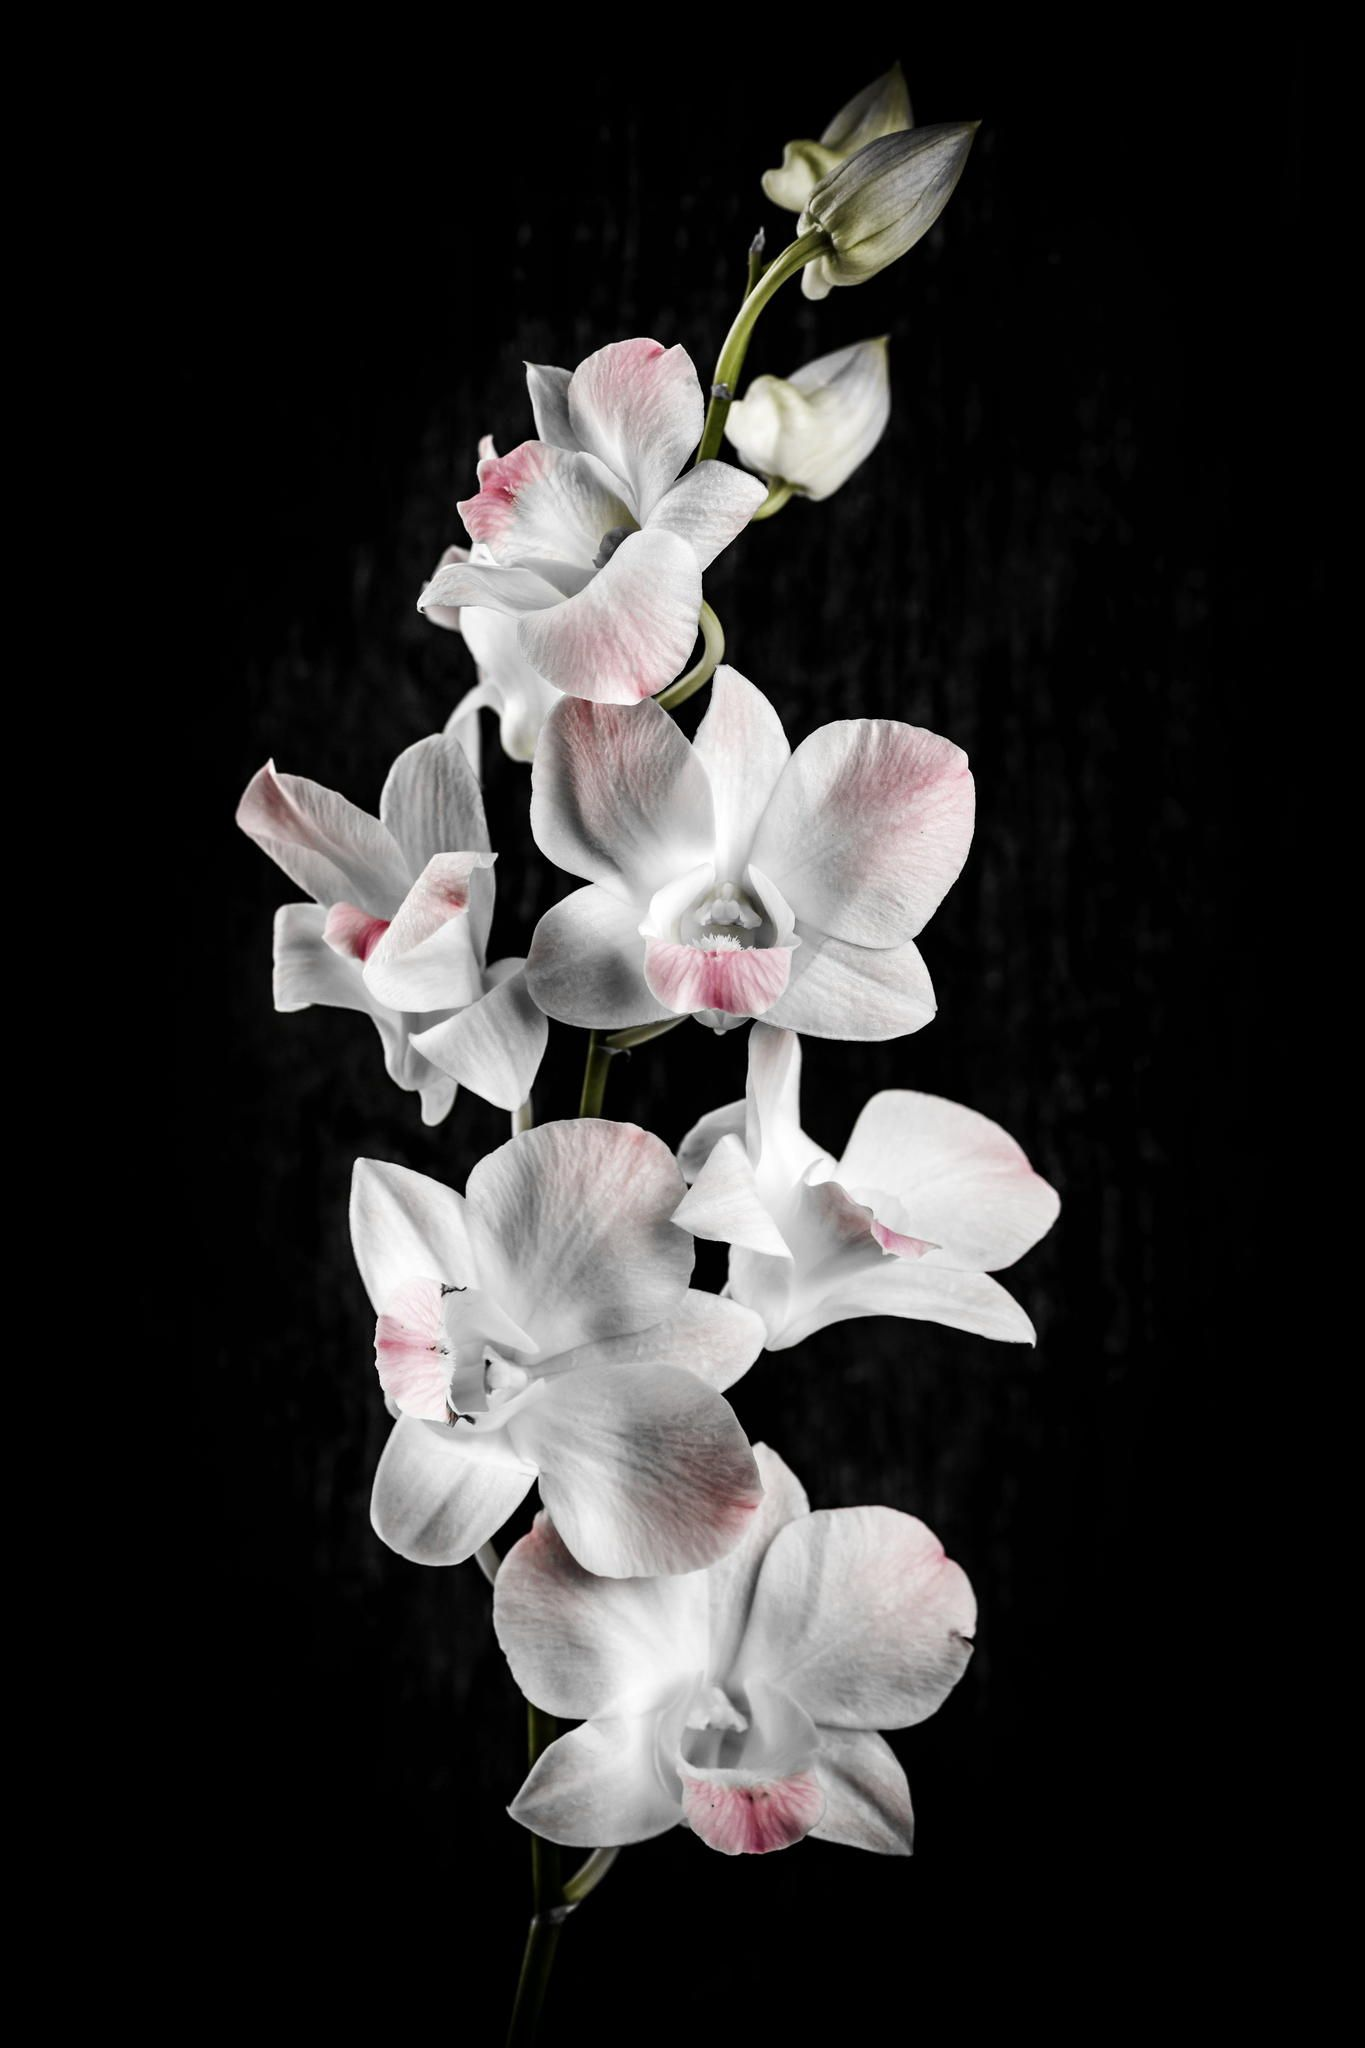 Orchid Flowers On Black Orchid Wallpaper Beautiful Flowers Photography Orchid Flower